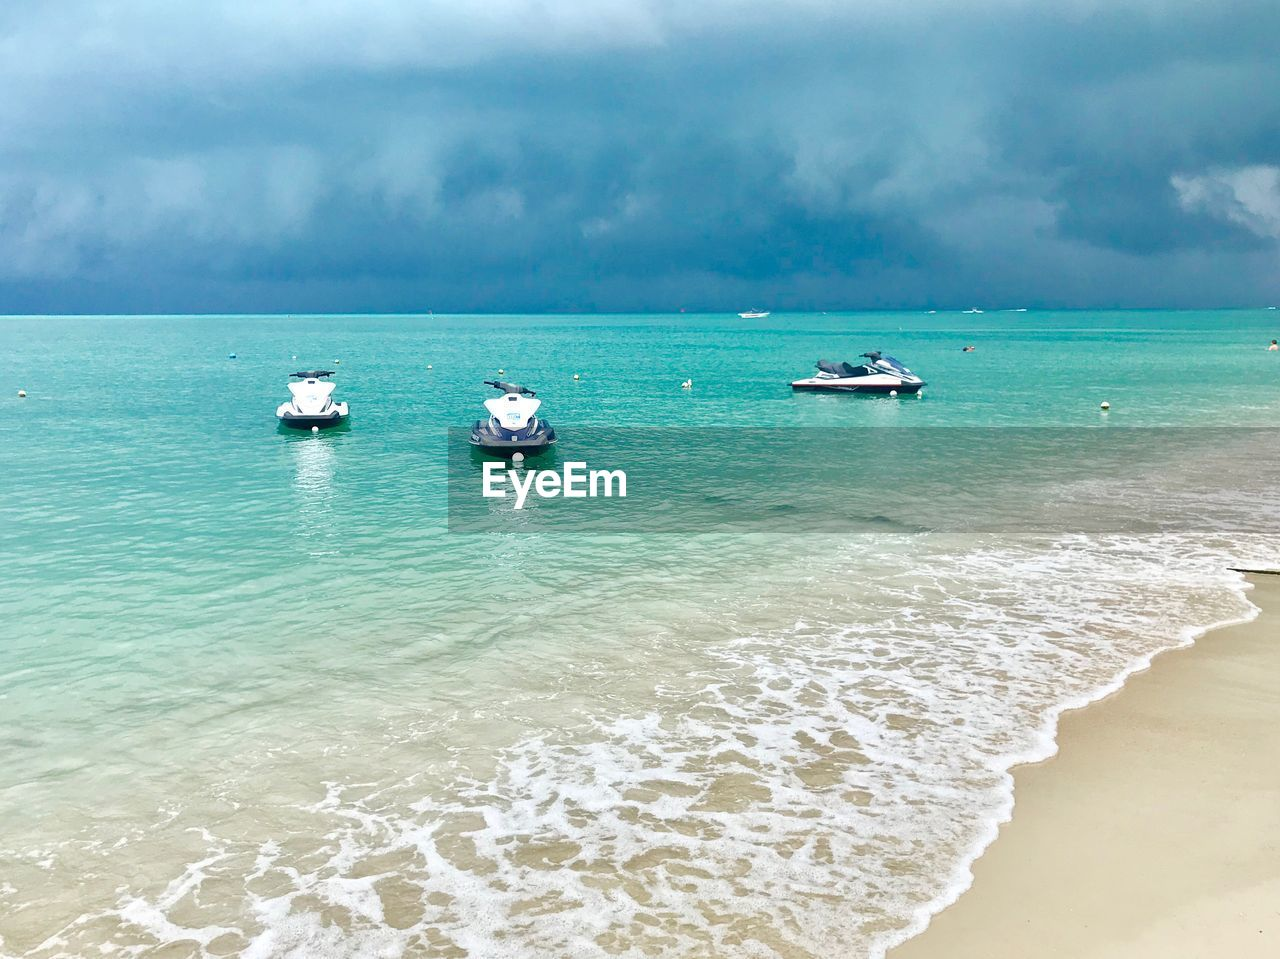 sea, water, nautical vessel, sky, beach, transportation, scenics - nature, mode of transportation, beauty in nature, land, sport, horizon over water, horizon, motion, cloud - sky, nature, day, wave, surfing, turquoise colored, outdoors